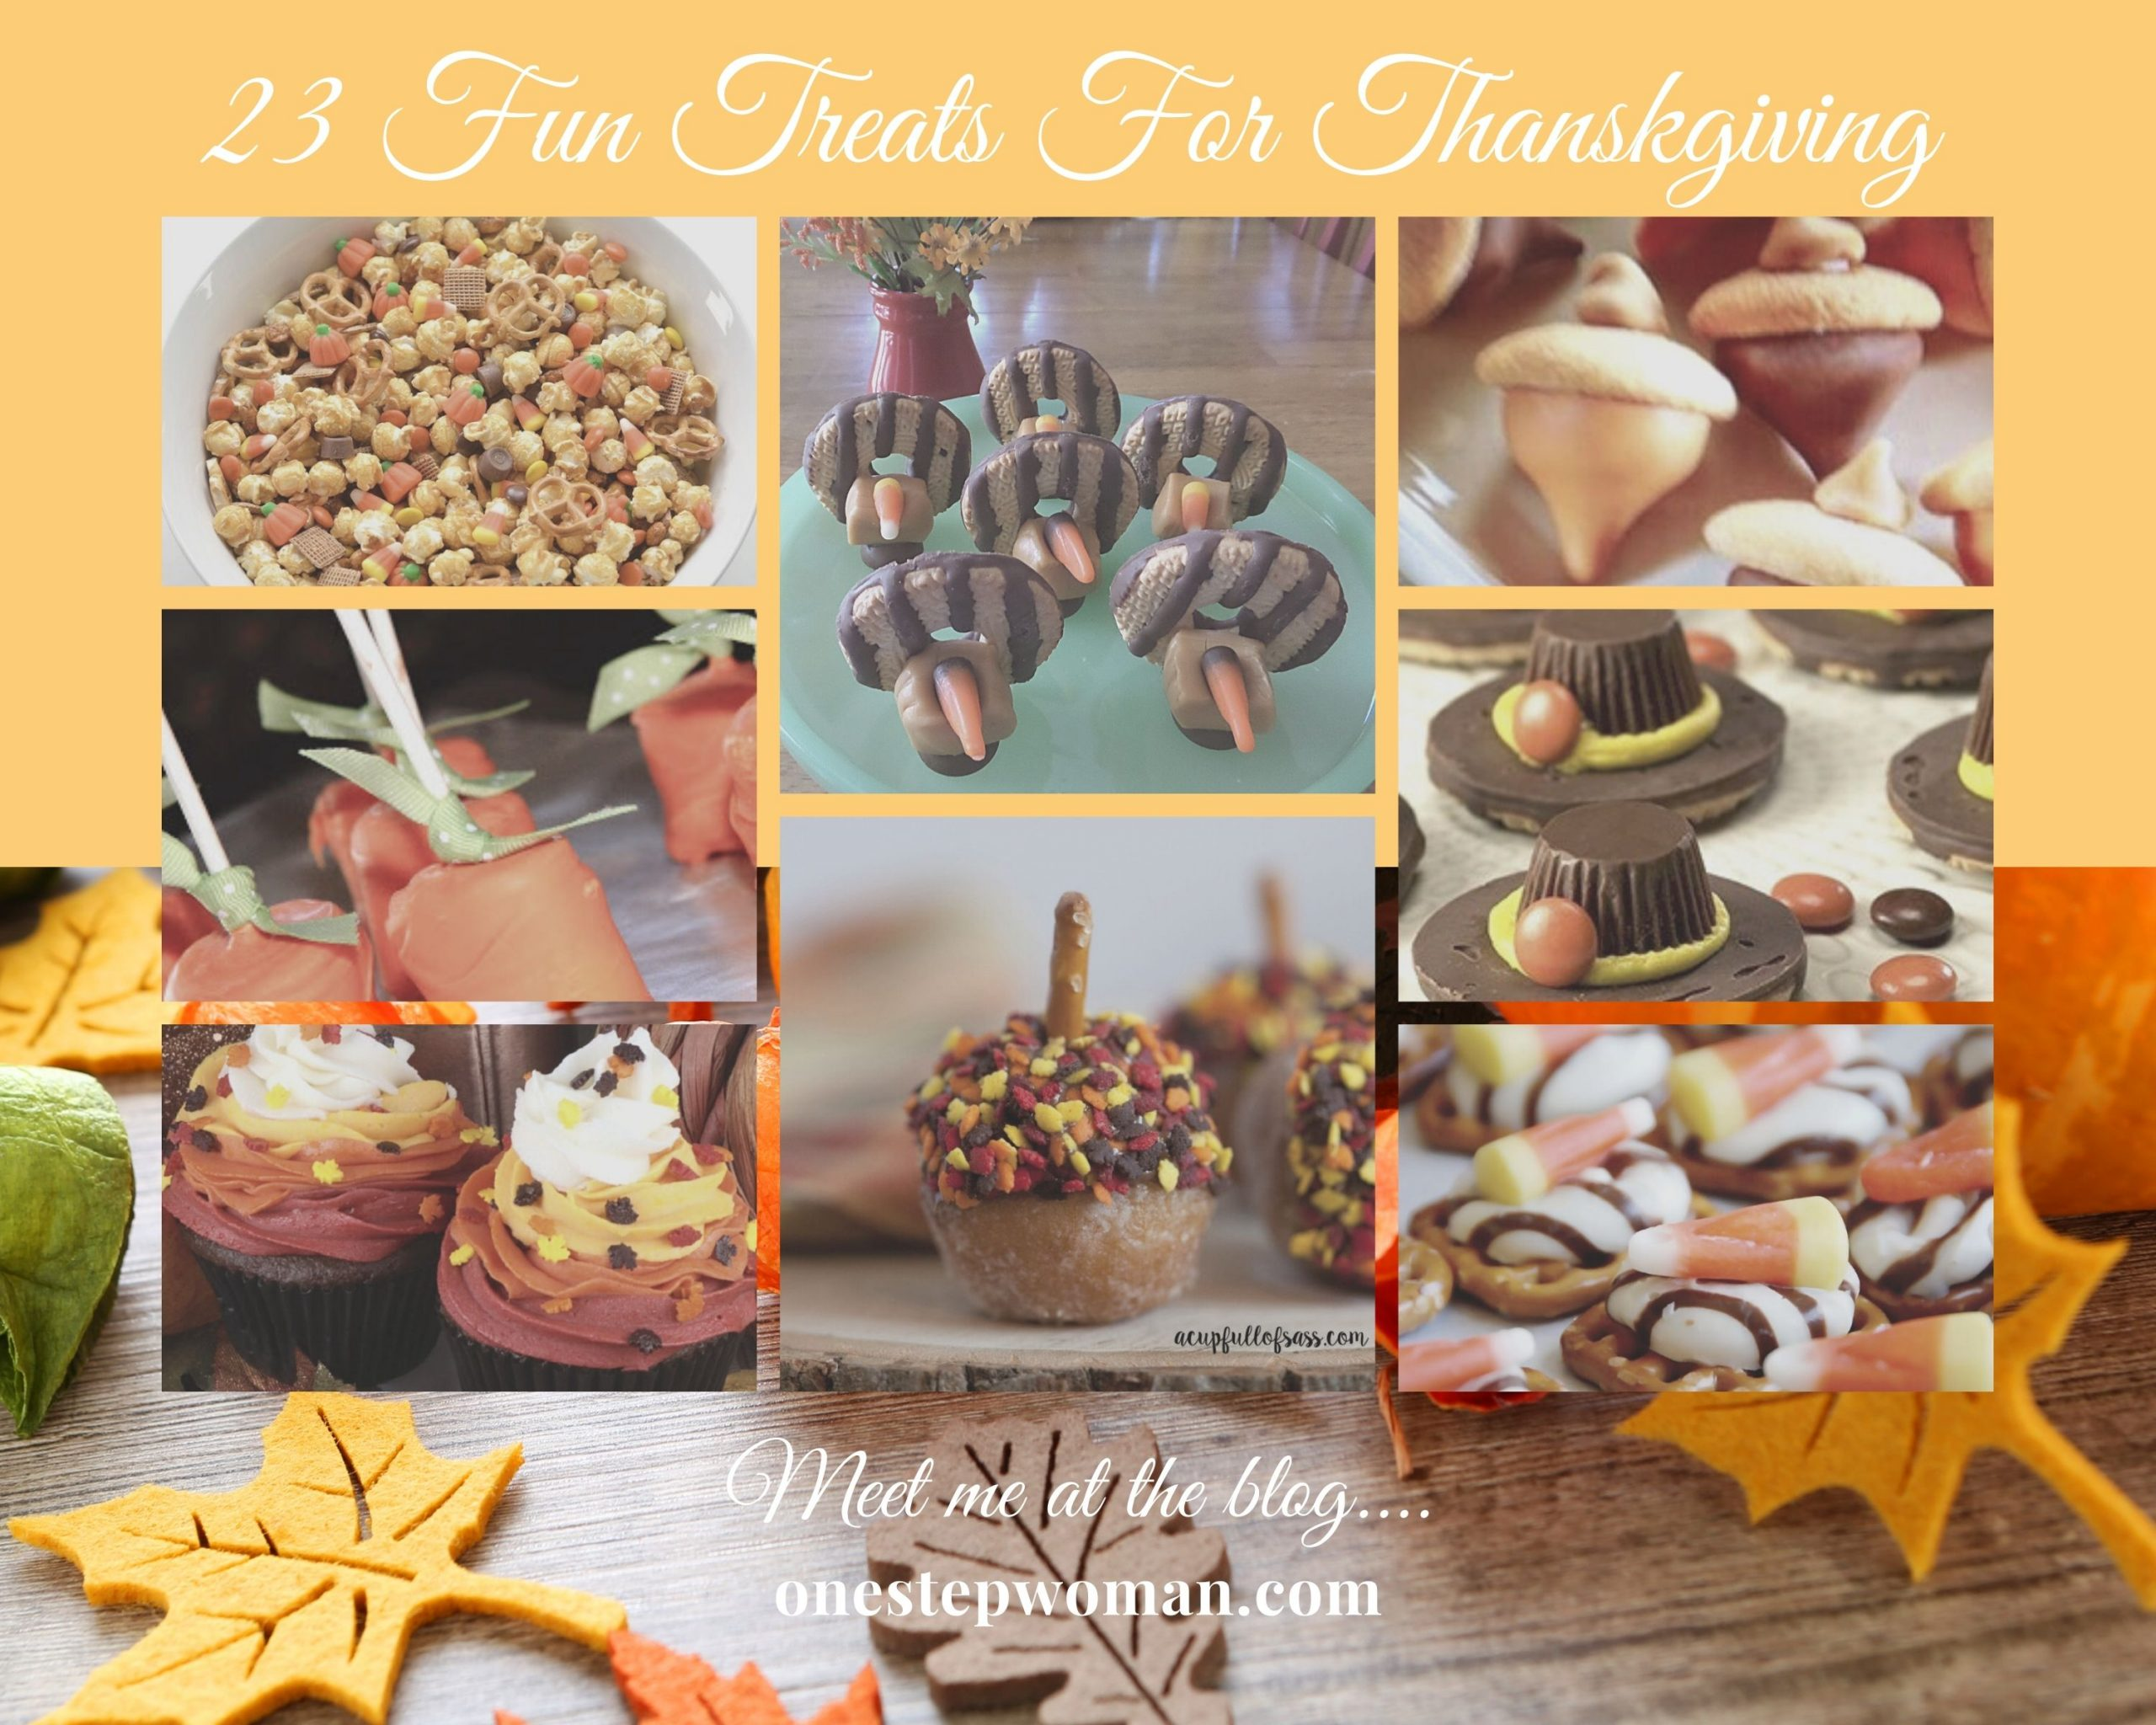 23 Fun Treats for Thanksgiving \ One Step Woman